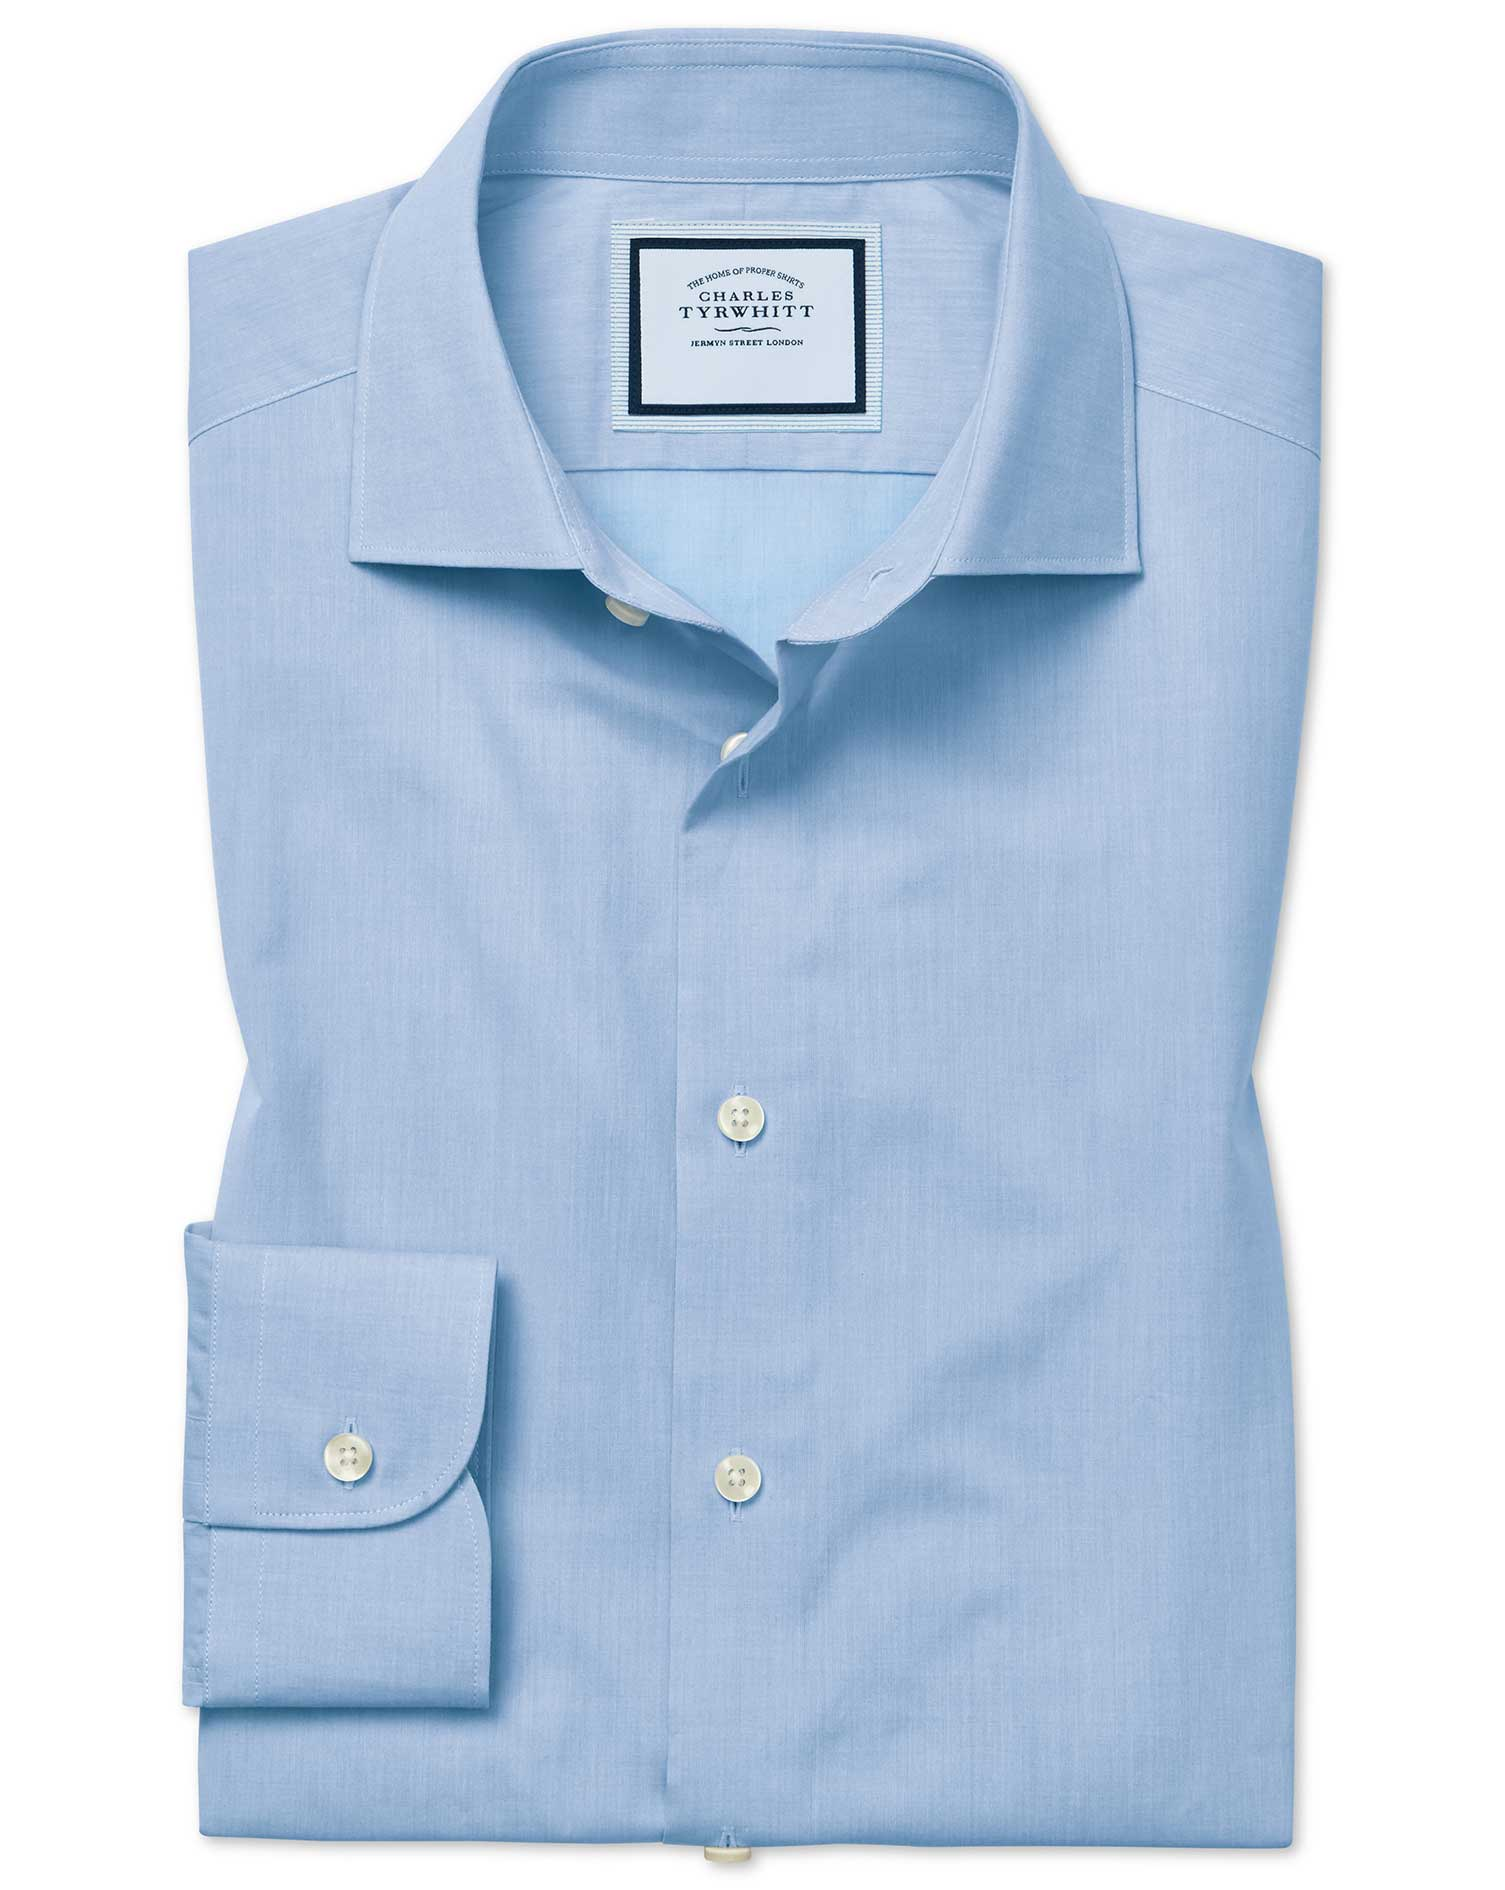 Slim Fit Peached Egyptian Cotton Sky Blue Formal Shirt Single Cuff Size 15/34 by Charles Tyrwhitt